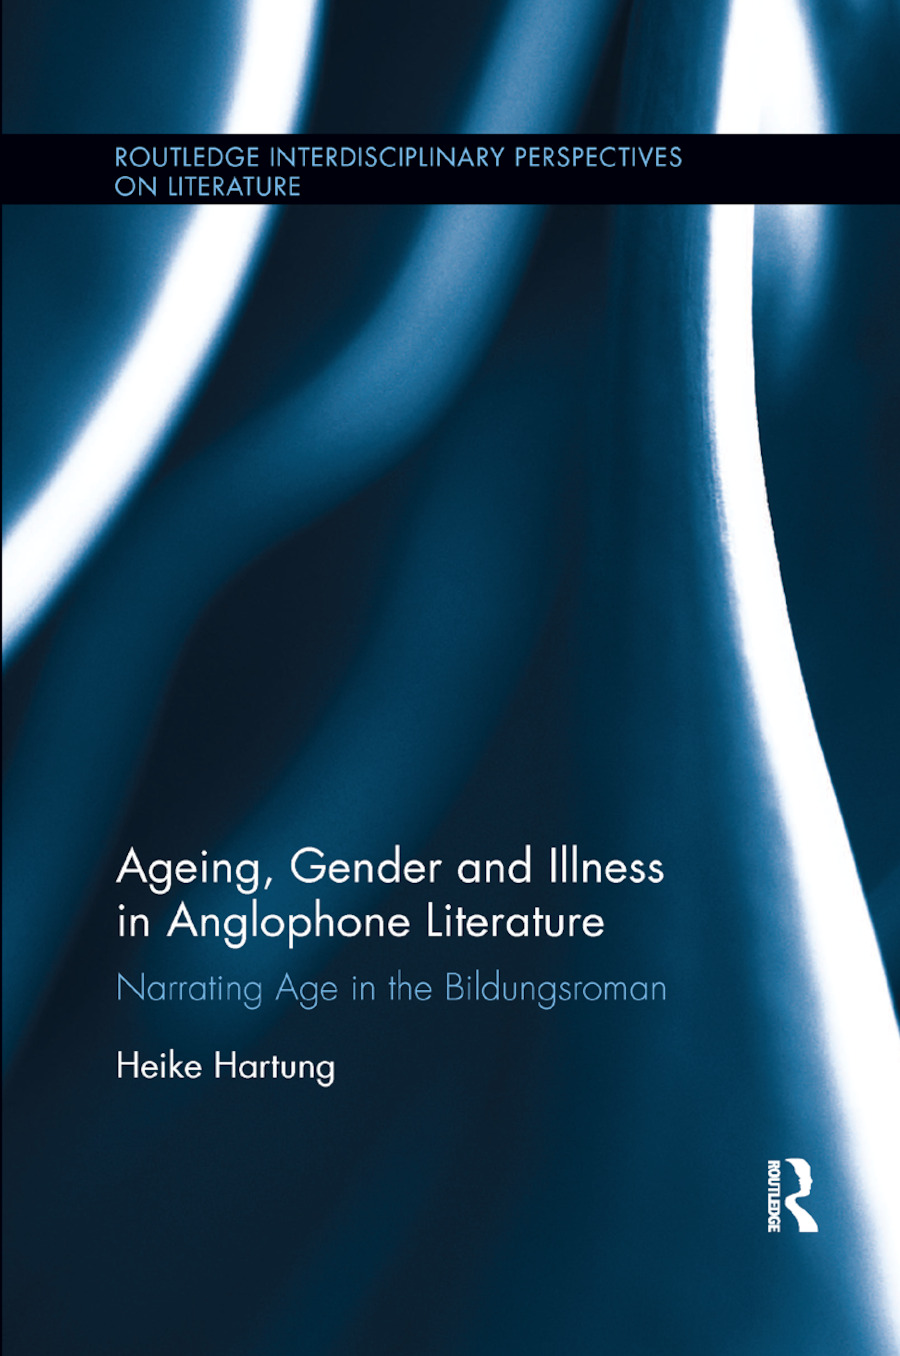 Ageing, Gender, and Illness in Anglophone Literature: Narrating Age in the Bildungsroman book cover